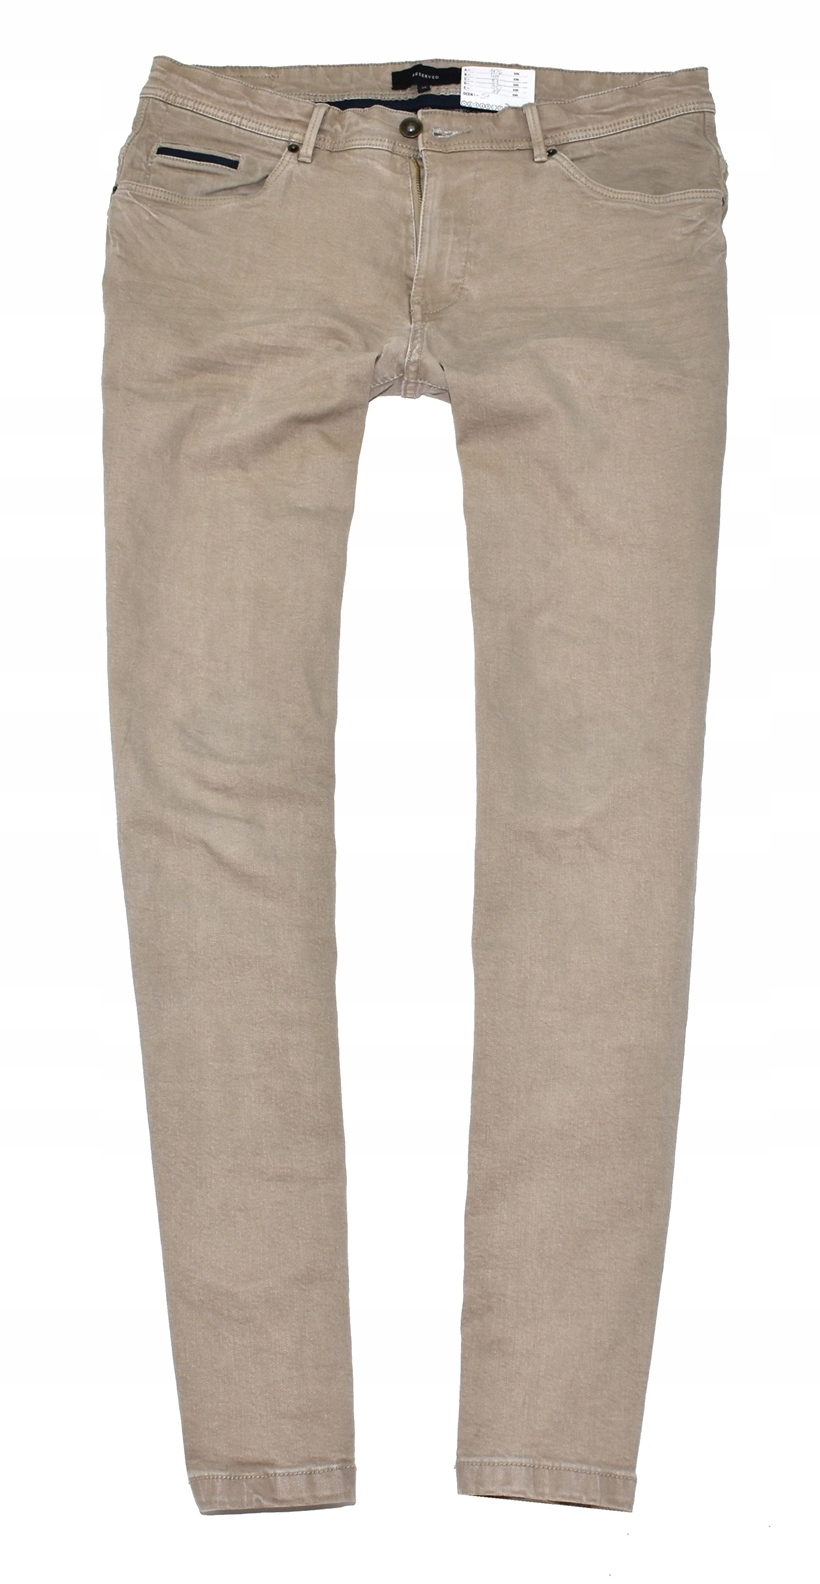 MM 234 RESERVED_ORYGINAL BEIGE CASUAL PANTS_34/32